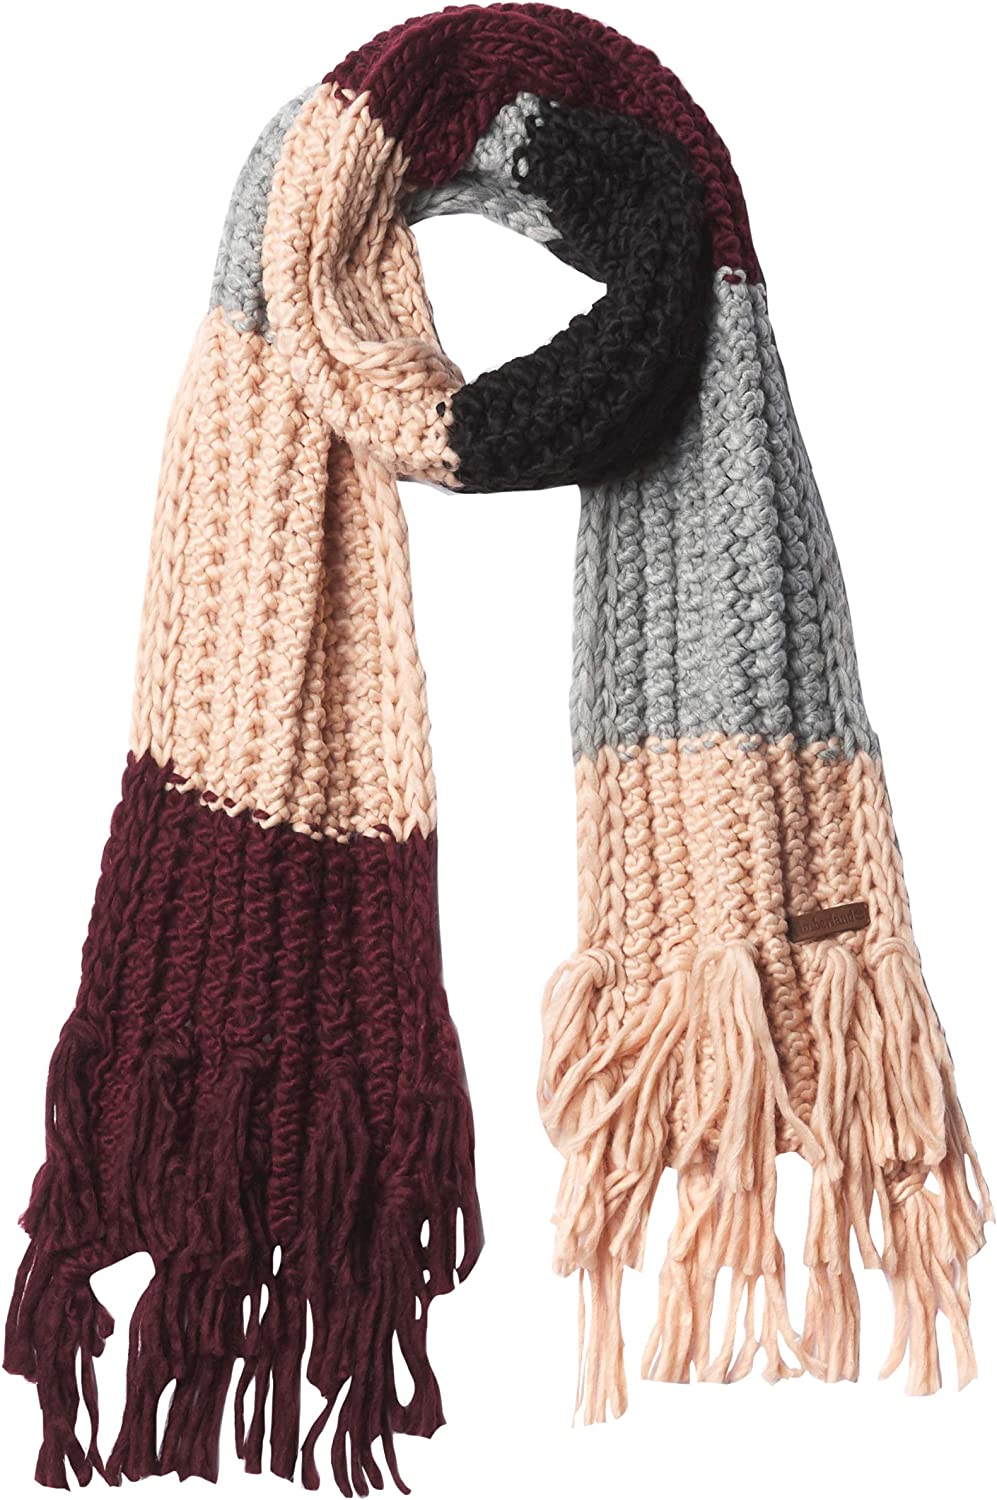 Timberland Chunky Colorblock Icelandic Scarf, Port Royale, one size